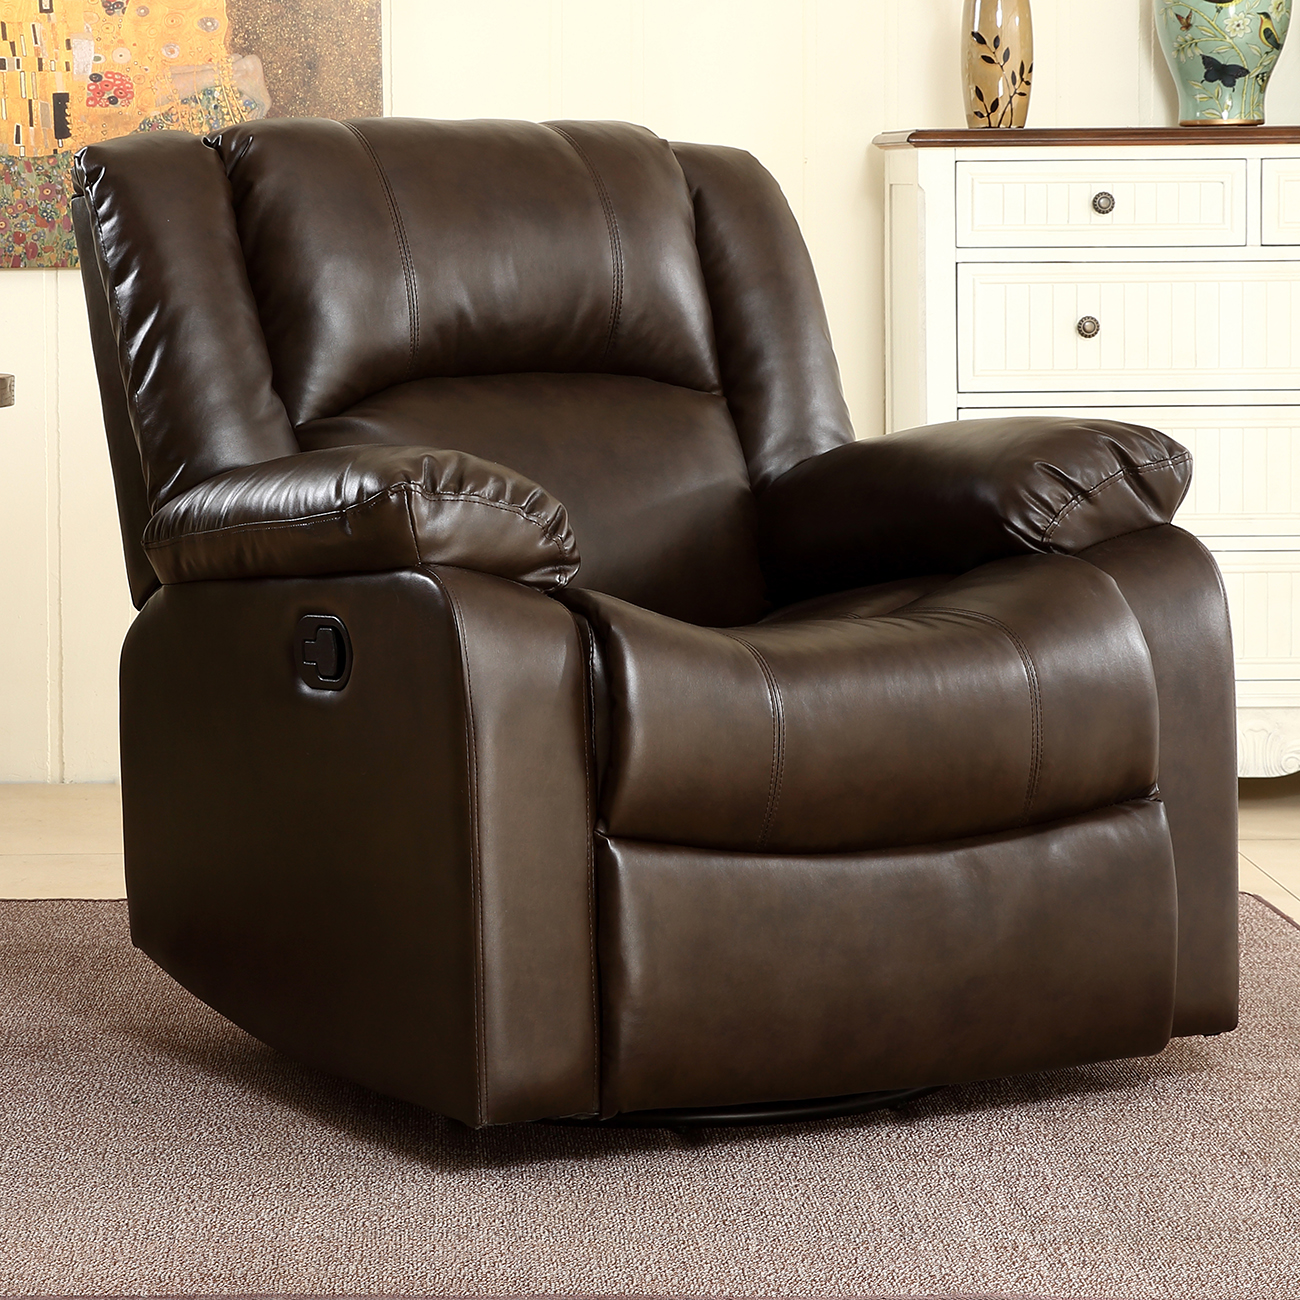 Belleze Faux Leather Rocker / Swivel Glider Recliner Living Room Chair (Brown)